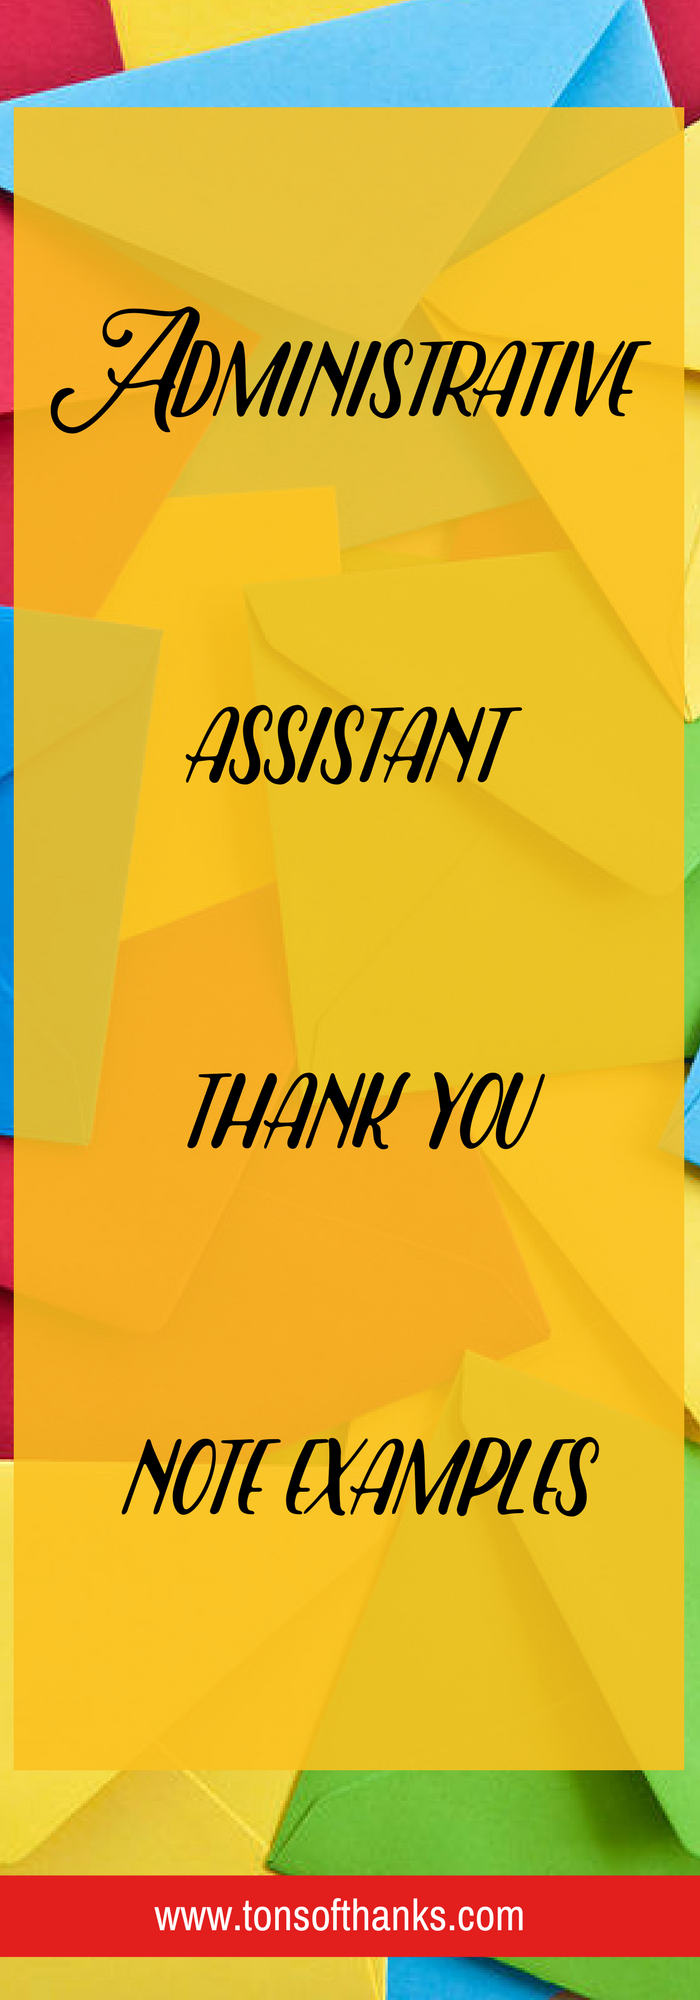 Example Thank You Notes For An Administrative Assistant  Note